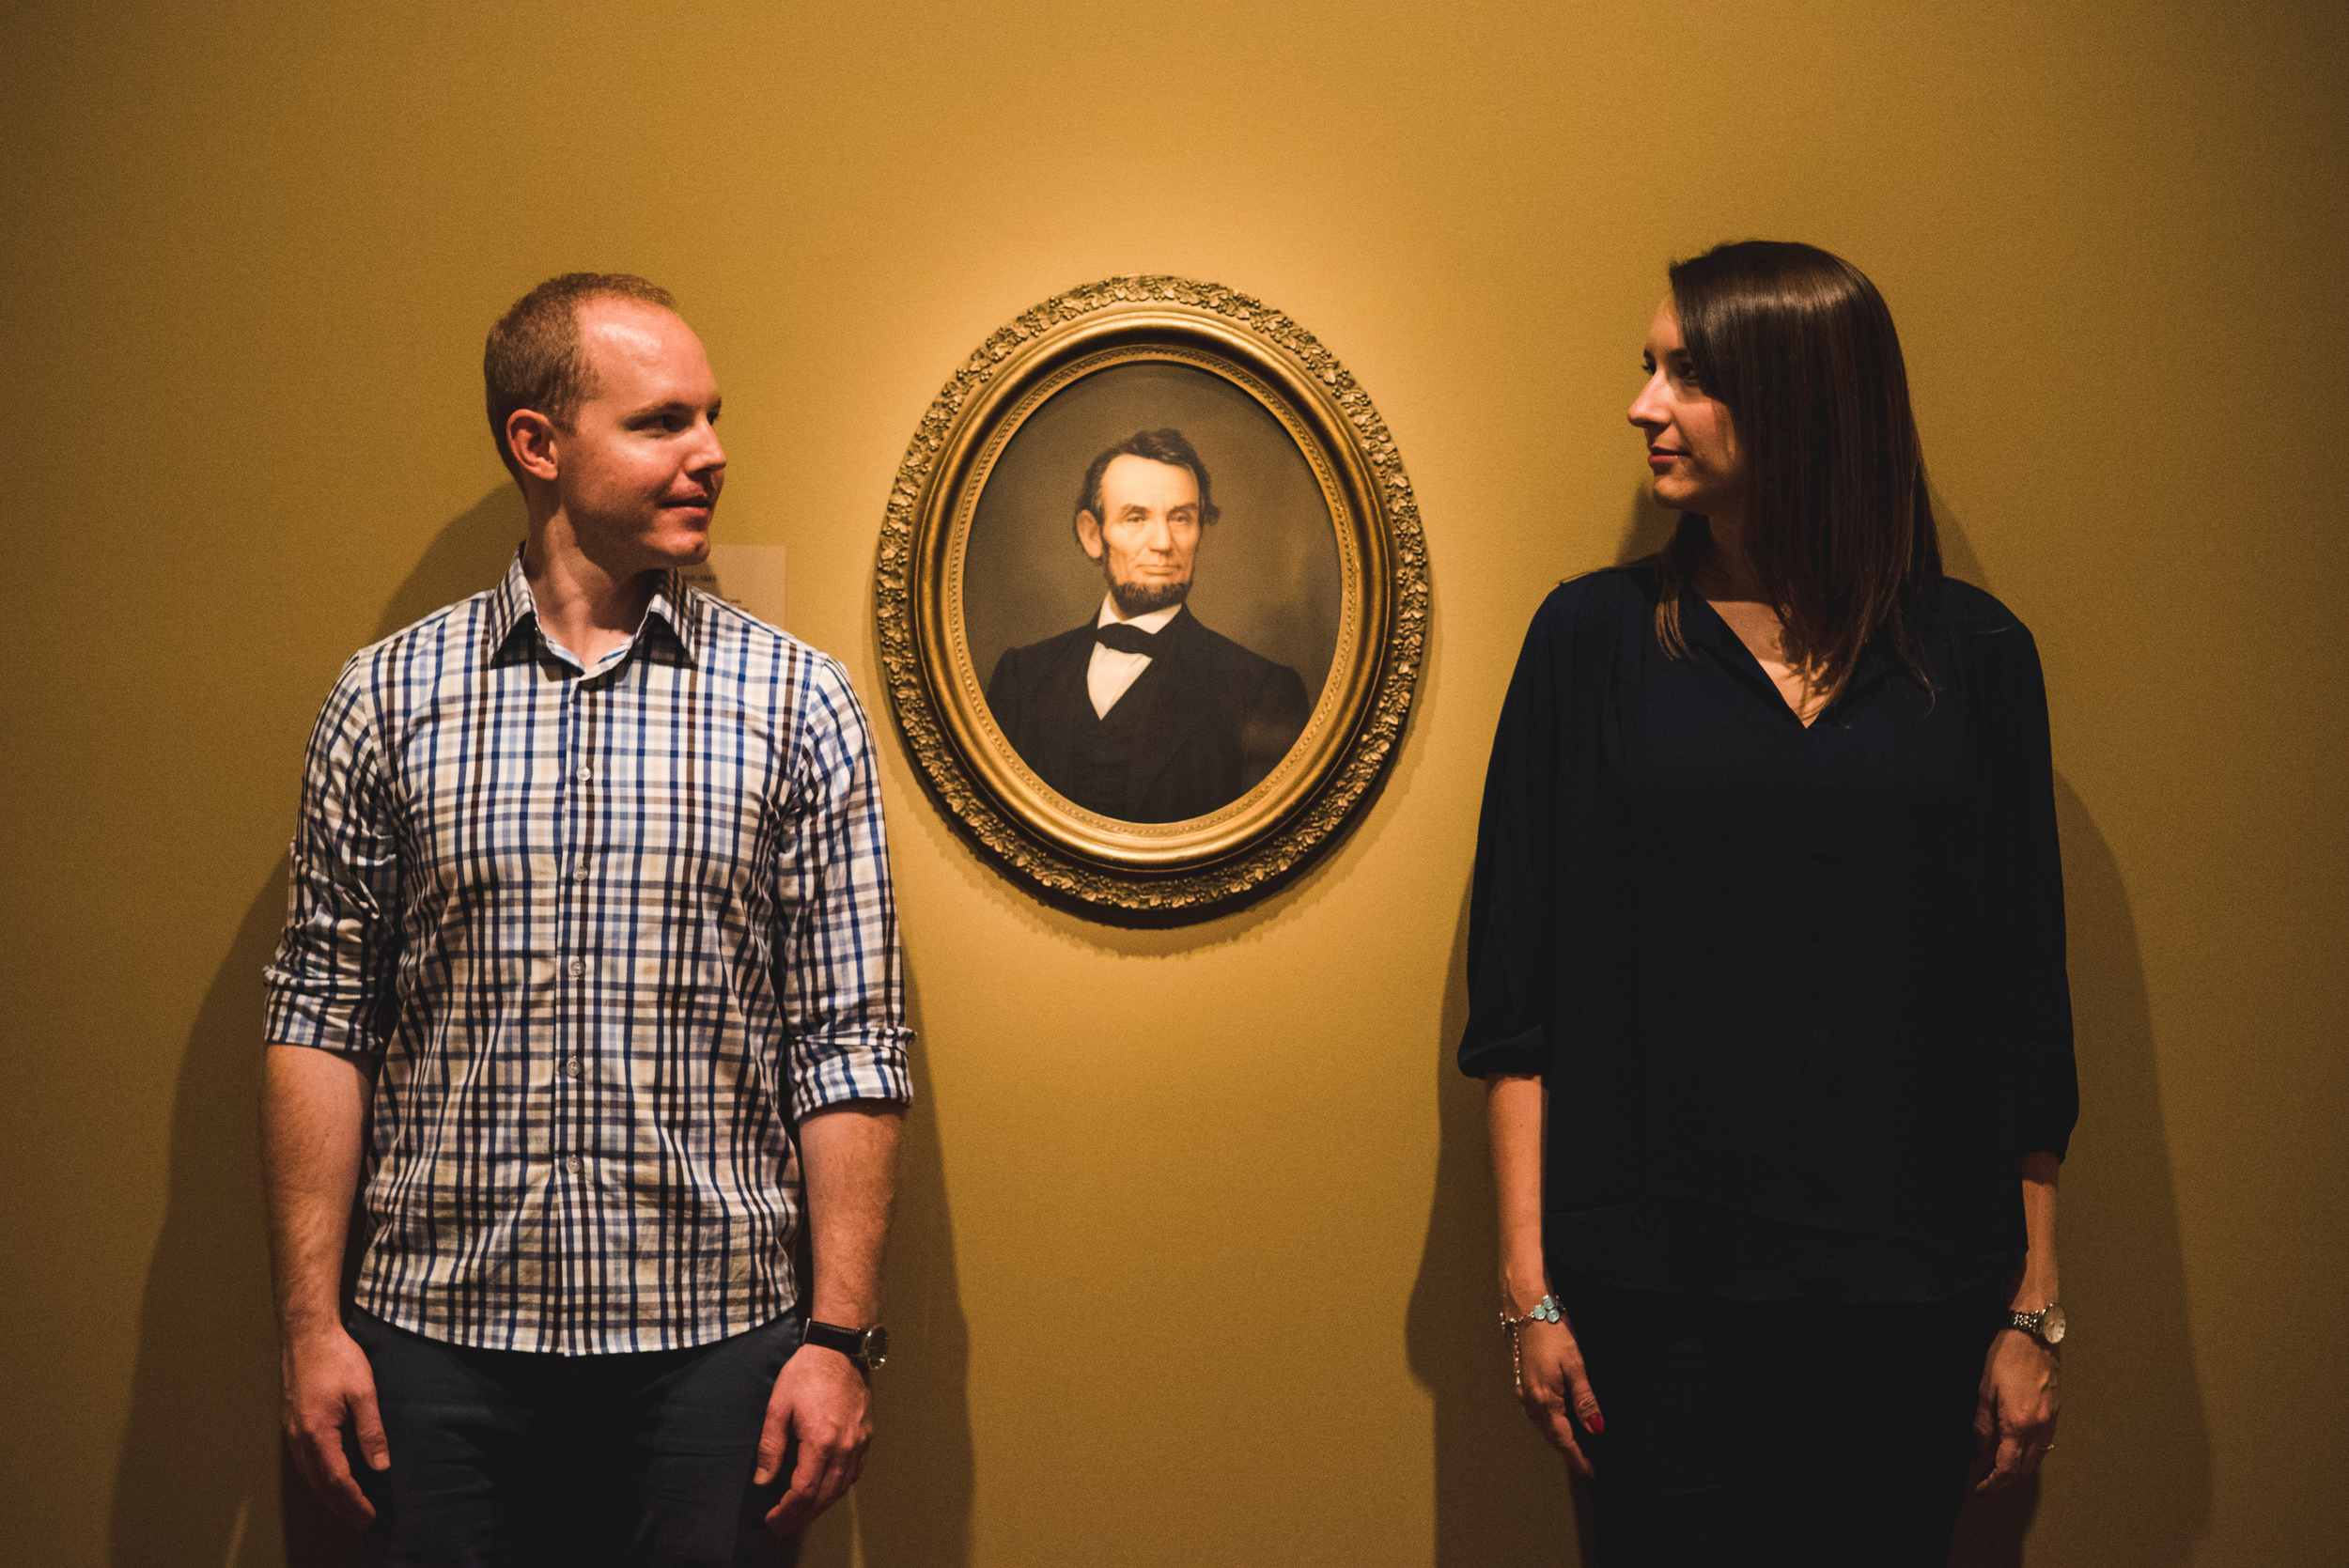 Smithsonian American Art Museum engagement session by Mantas Kubilinskas-14.jpg